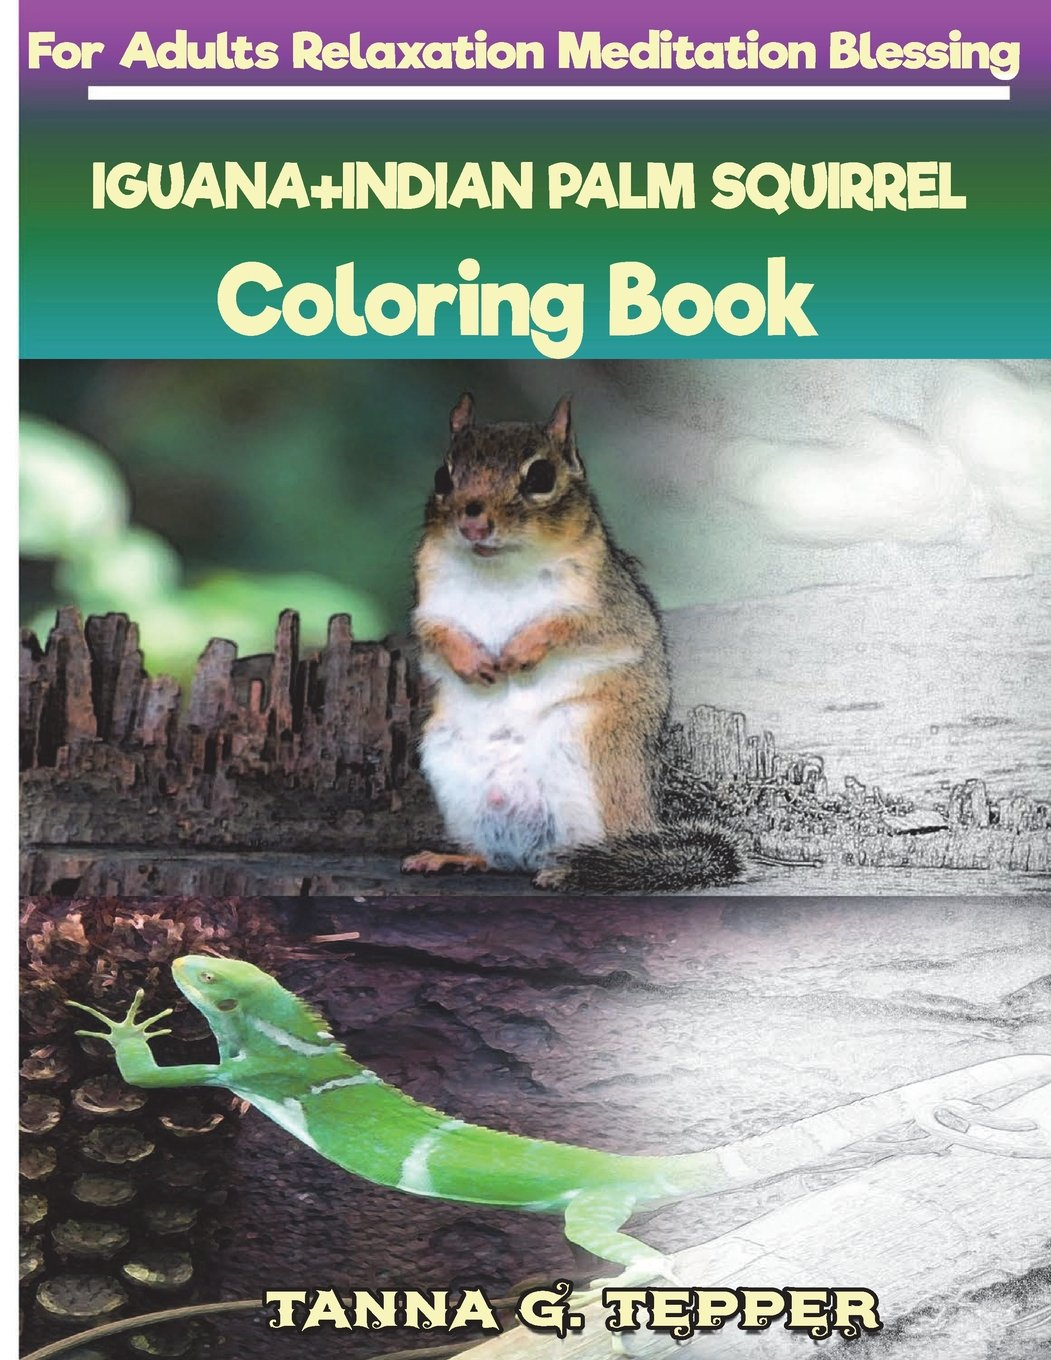 Download IGUANA+INDIAN PALM SQUIRREL Coloring book for Adults Relaxation Meditation: Sketch coloring book Grayscale Pictures pdf epub